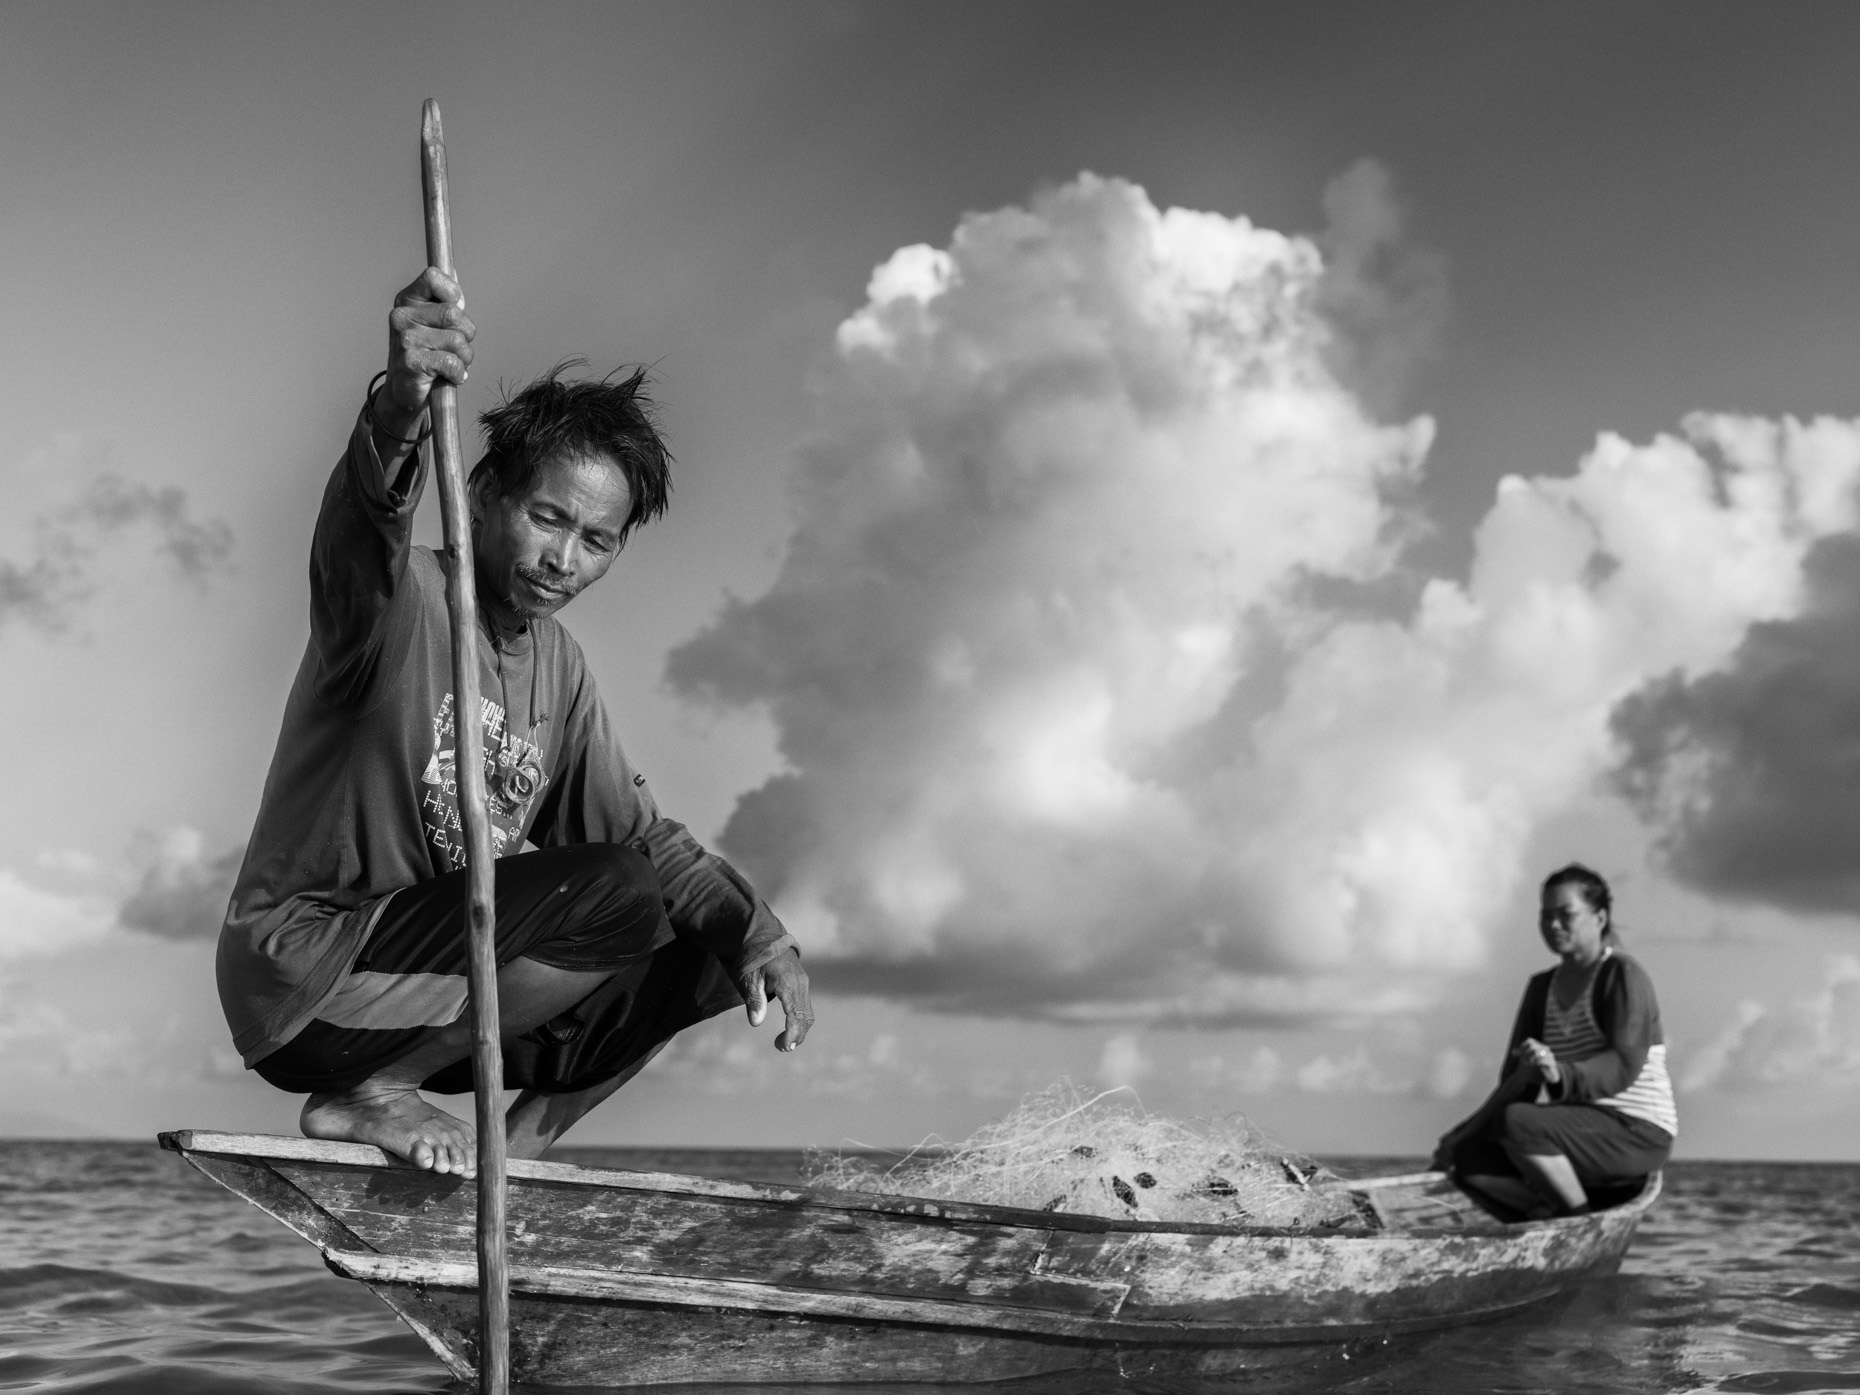 Fisherman in Sabah, Borneo by Brisbane Travel Photography Mark Lehn